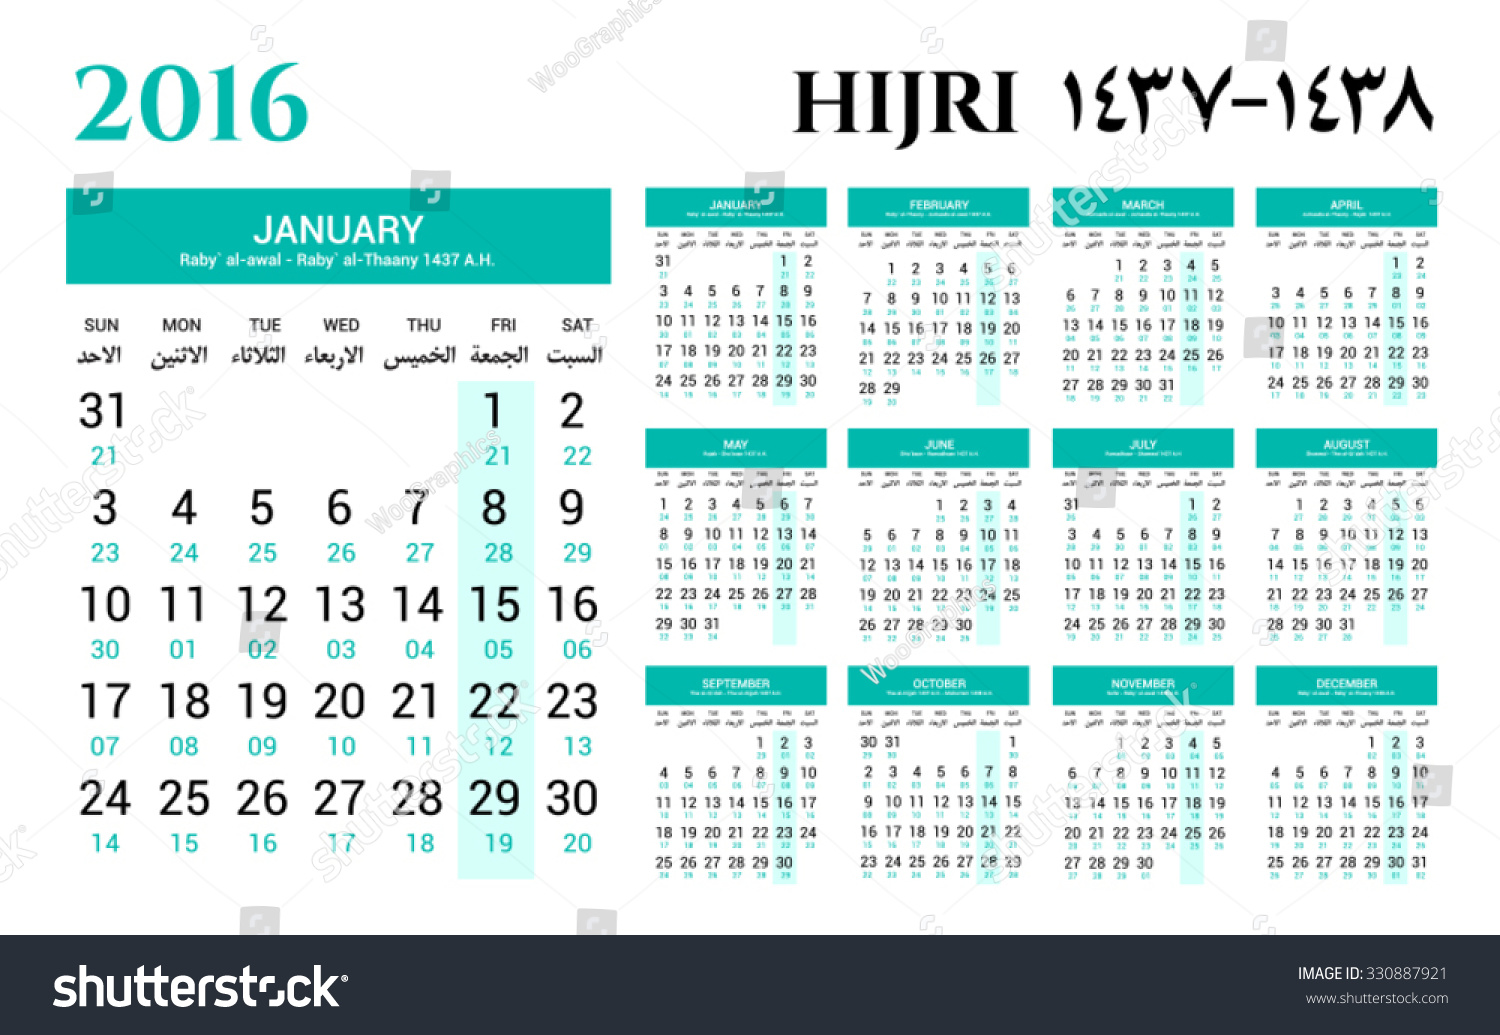 Islamic Calendar Vector Free Download | Calendar Extreme Sports